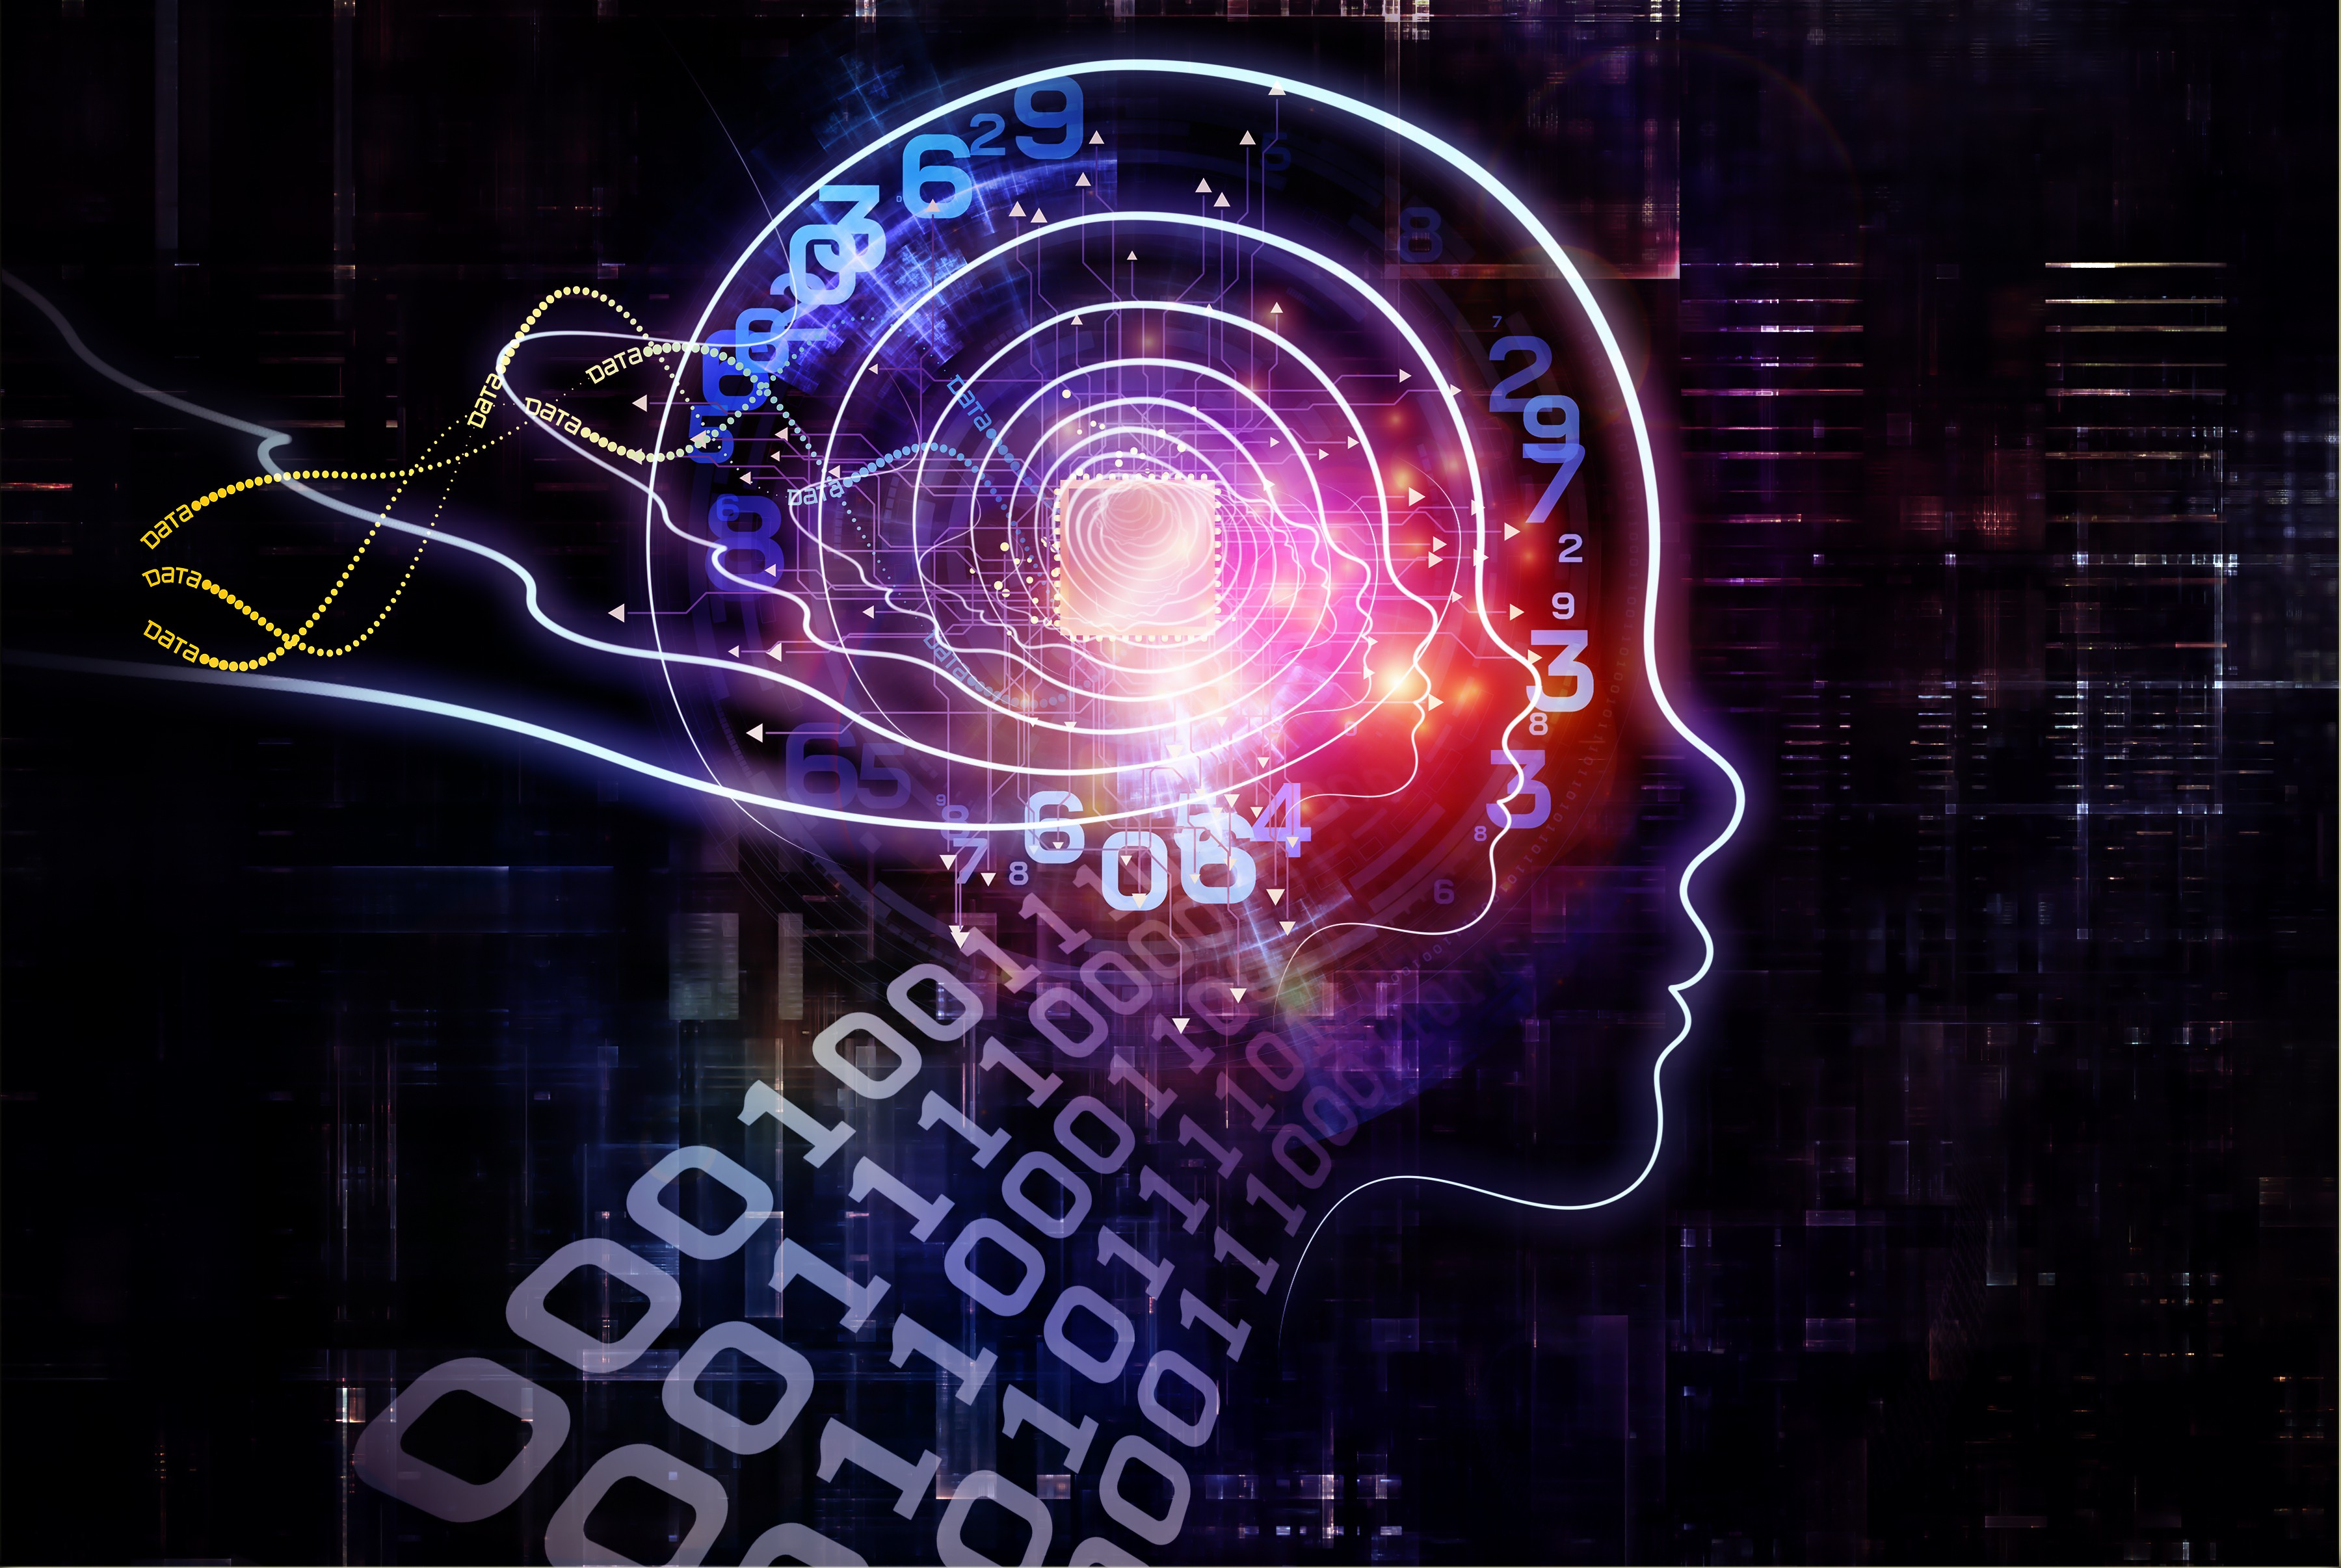 the many uses of cognitive ability of the artificial intelligence in computing science